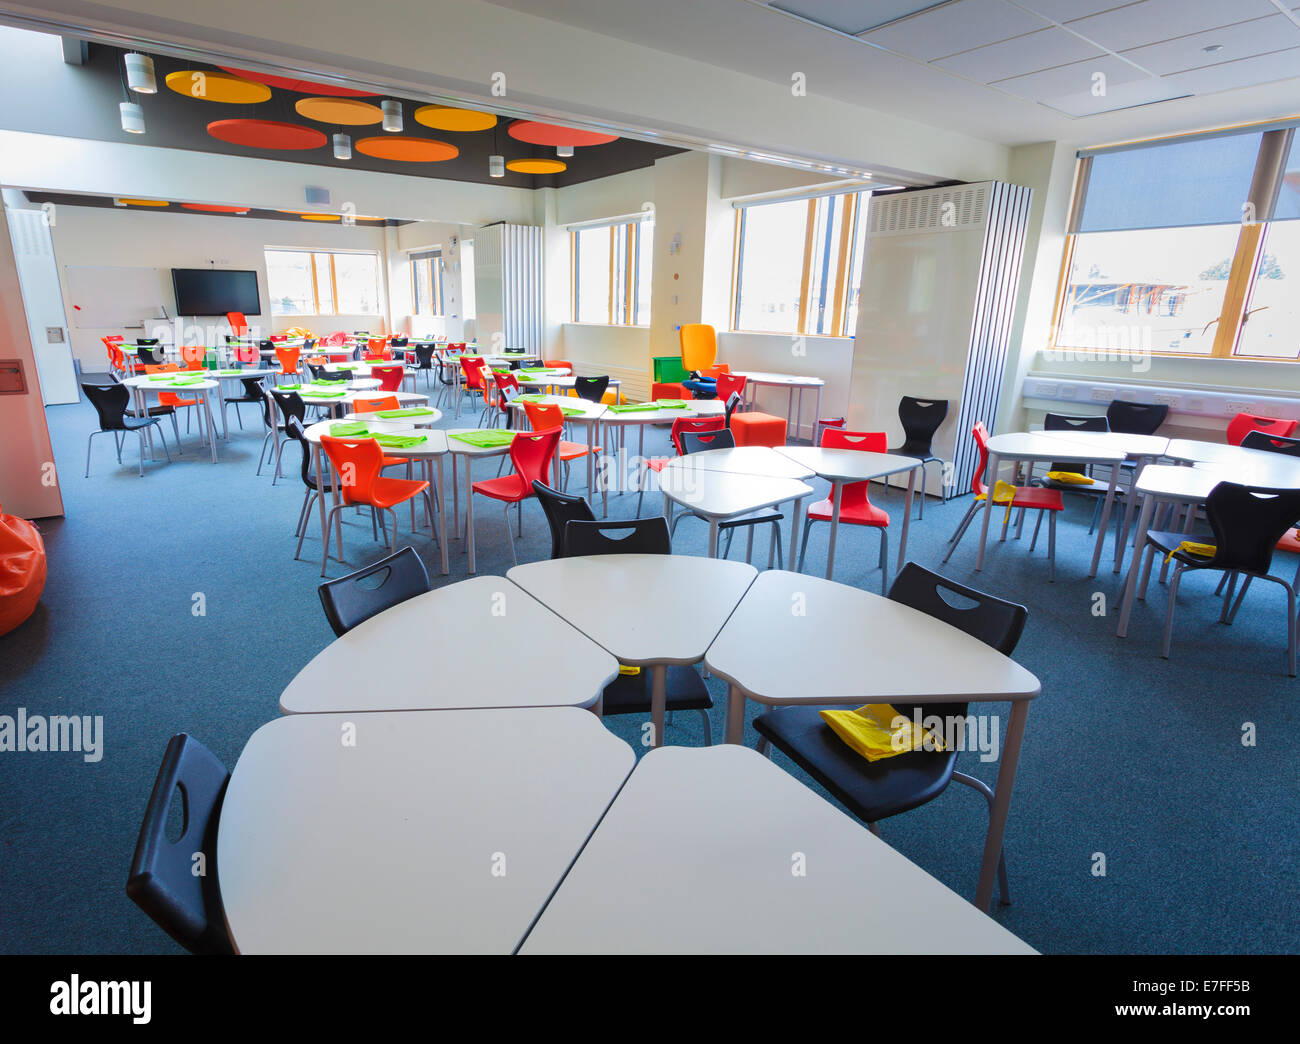 Modern Classroom Desks ~ Unoccupied modern school classroom with desks in a circle